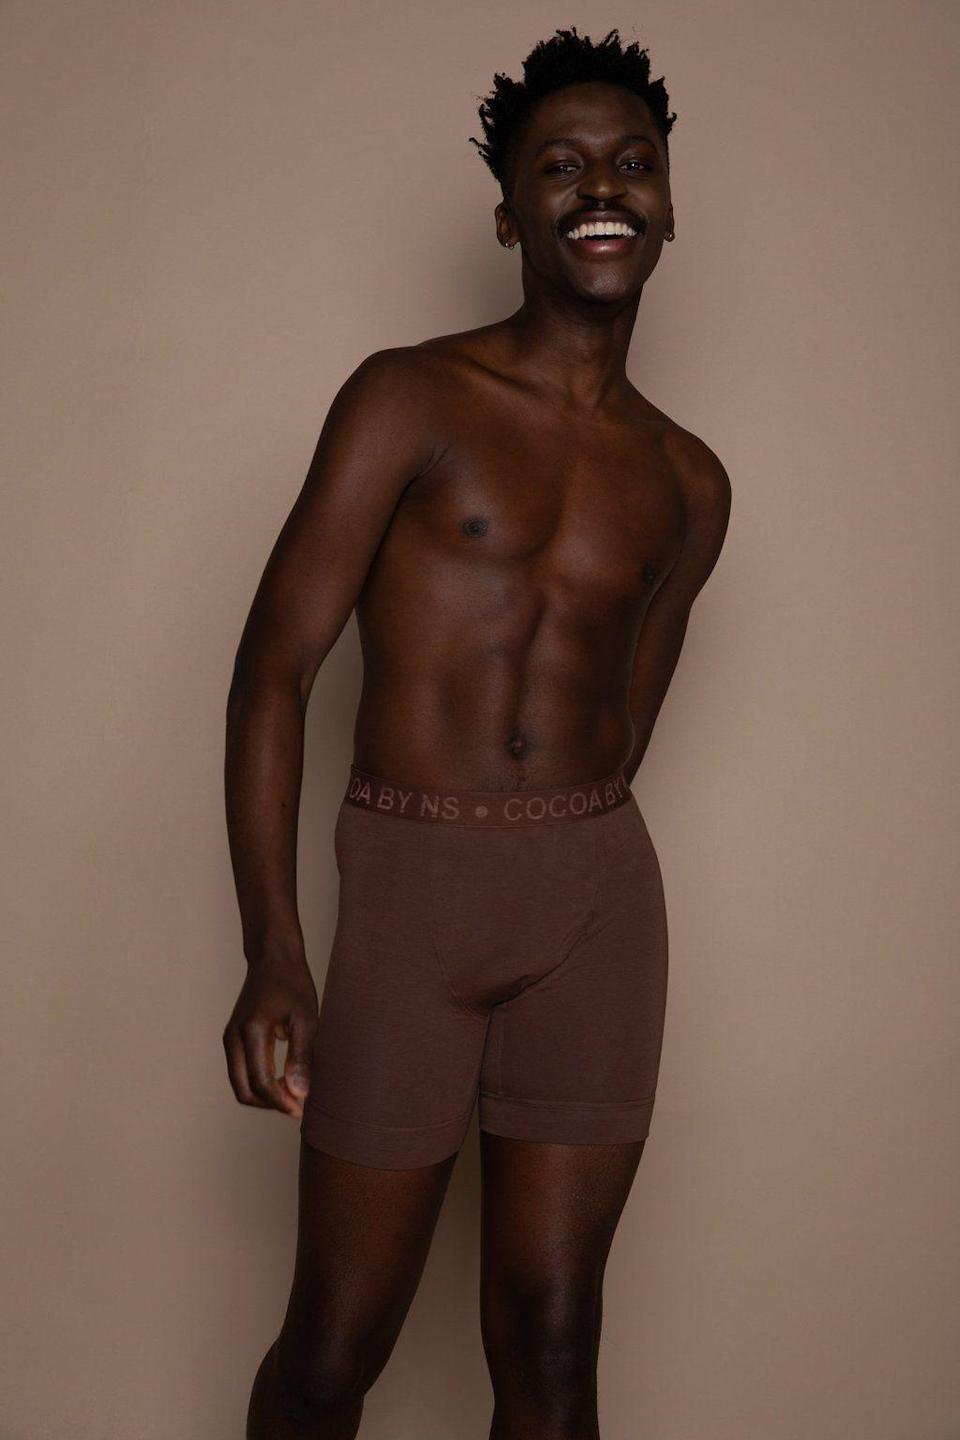 """<p><strong>nubian</strong></p><p>nubianskin.com</p><p><strong>£29.50</strong></p><p><a href=""""https://www.nubianskin.com/collections/menswear/products/mens-boxer-brief?variant=31529255764030"""" rel=""""nofollow noopener"""" target=""""_blank"""" data-ylk=""""slk:BUY IT HERE"""" class=""""link rapid-noclick-resp"""">BUY IT HERE</a></p><p>For men with a darker skin tone, Nubian Skin offers a breathable and super-soft boxer briefs that come in variety of rich brown colors to provide a birthday suit illusion. They're the perfect balance of sexy and comfortable. </p>"""